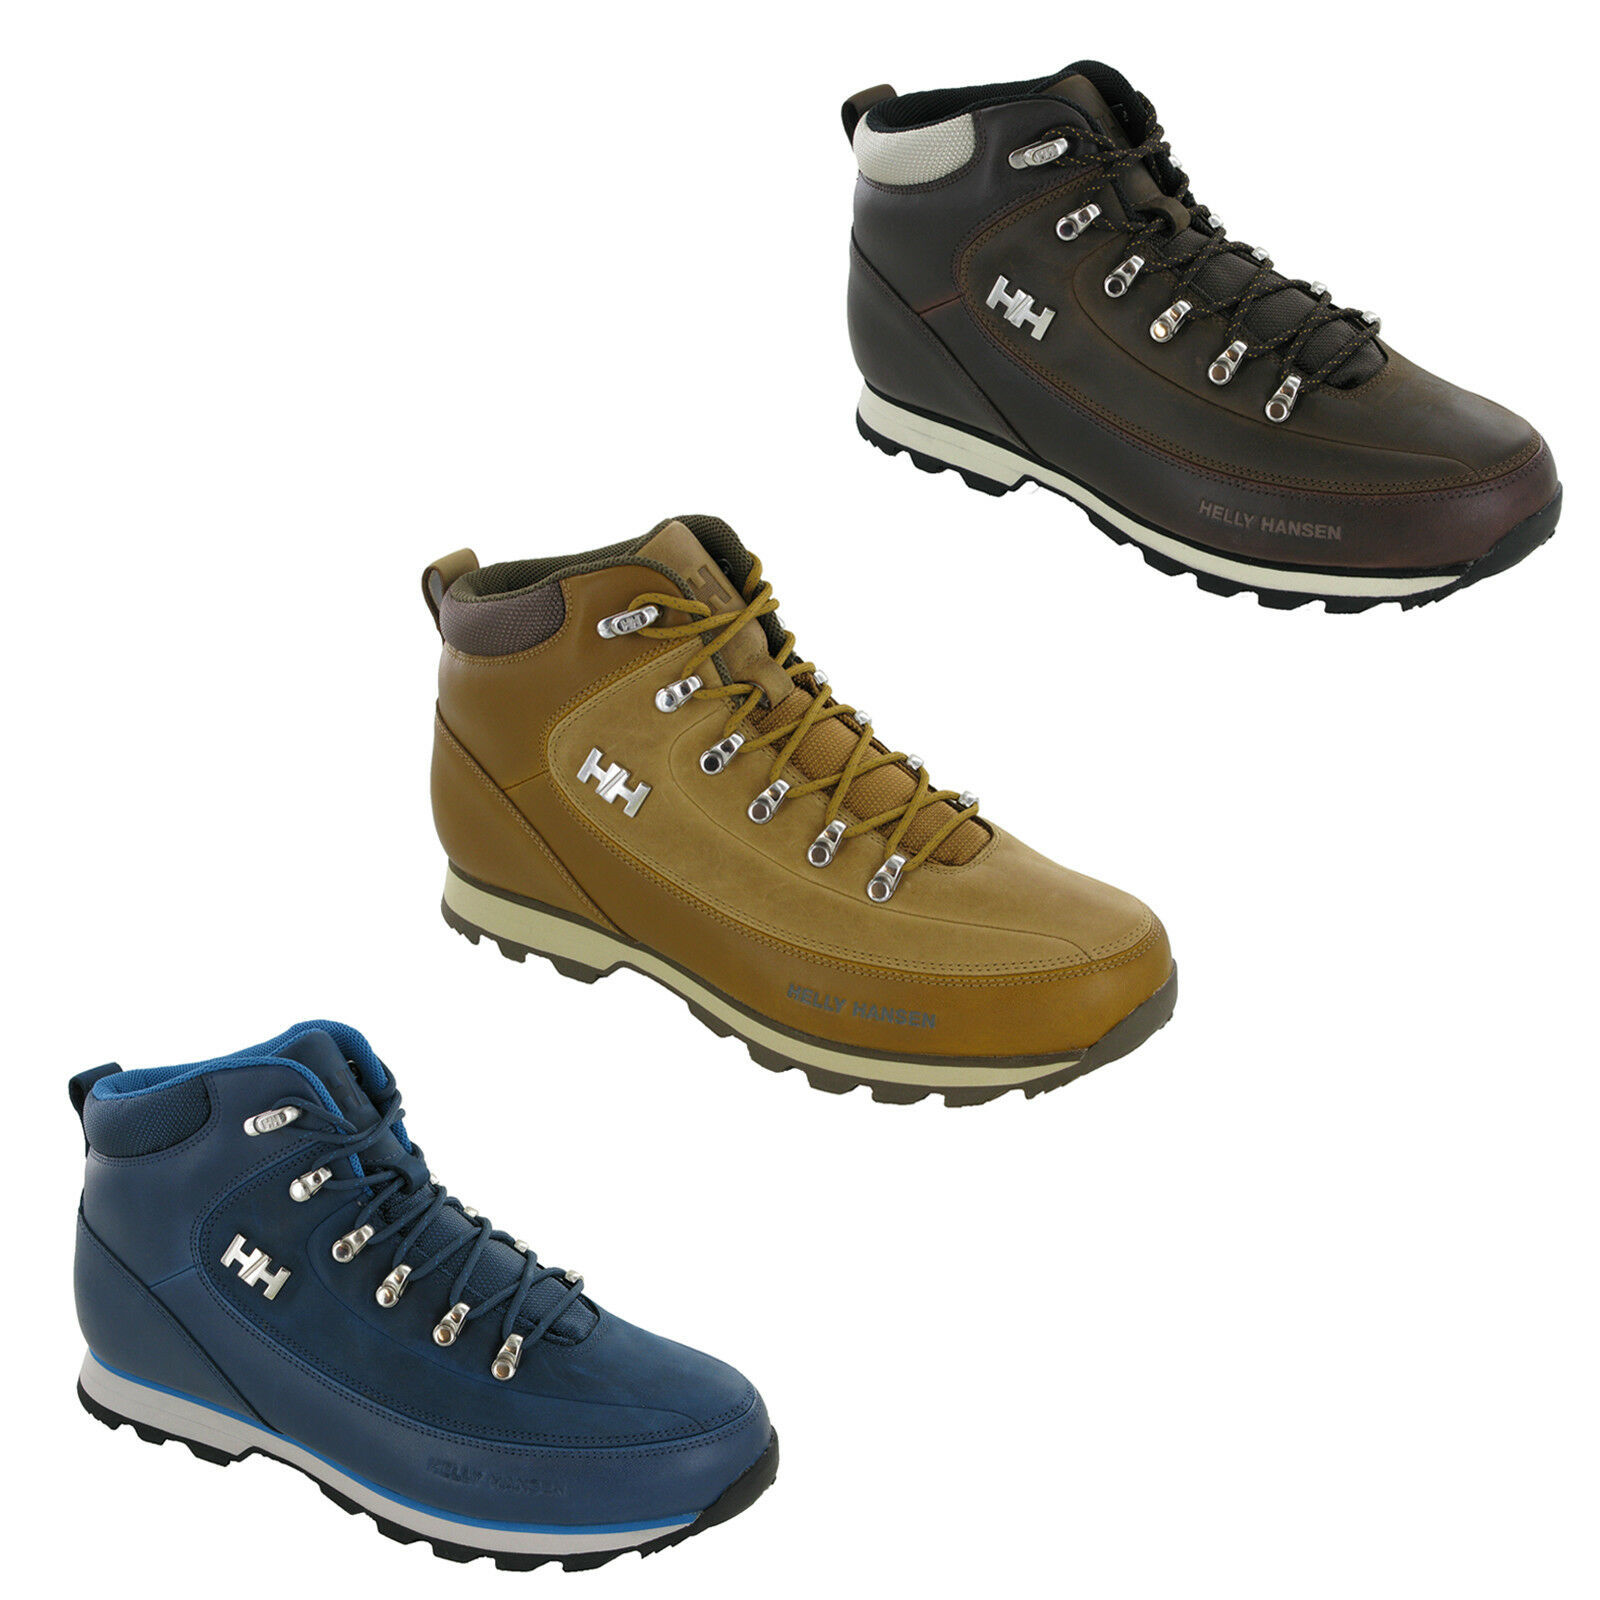 5acae406e6b Details about Helly Hansen Mens Boots Forester Winter Ankle Walking Water  Repellant Shoes